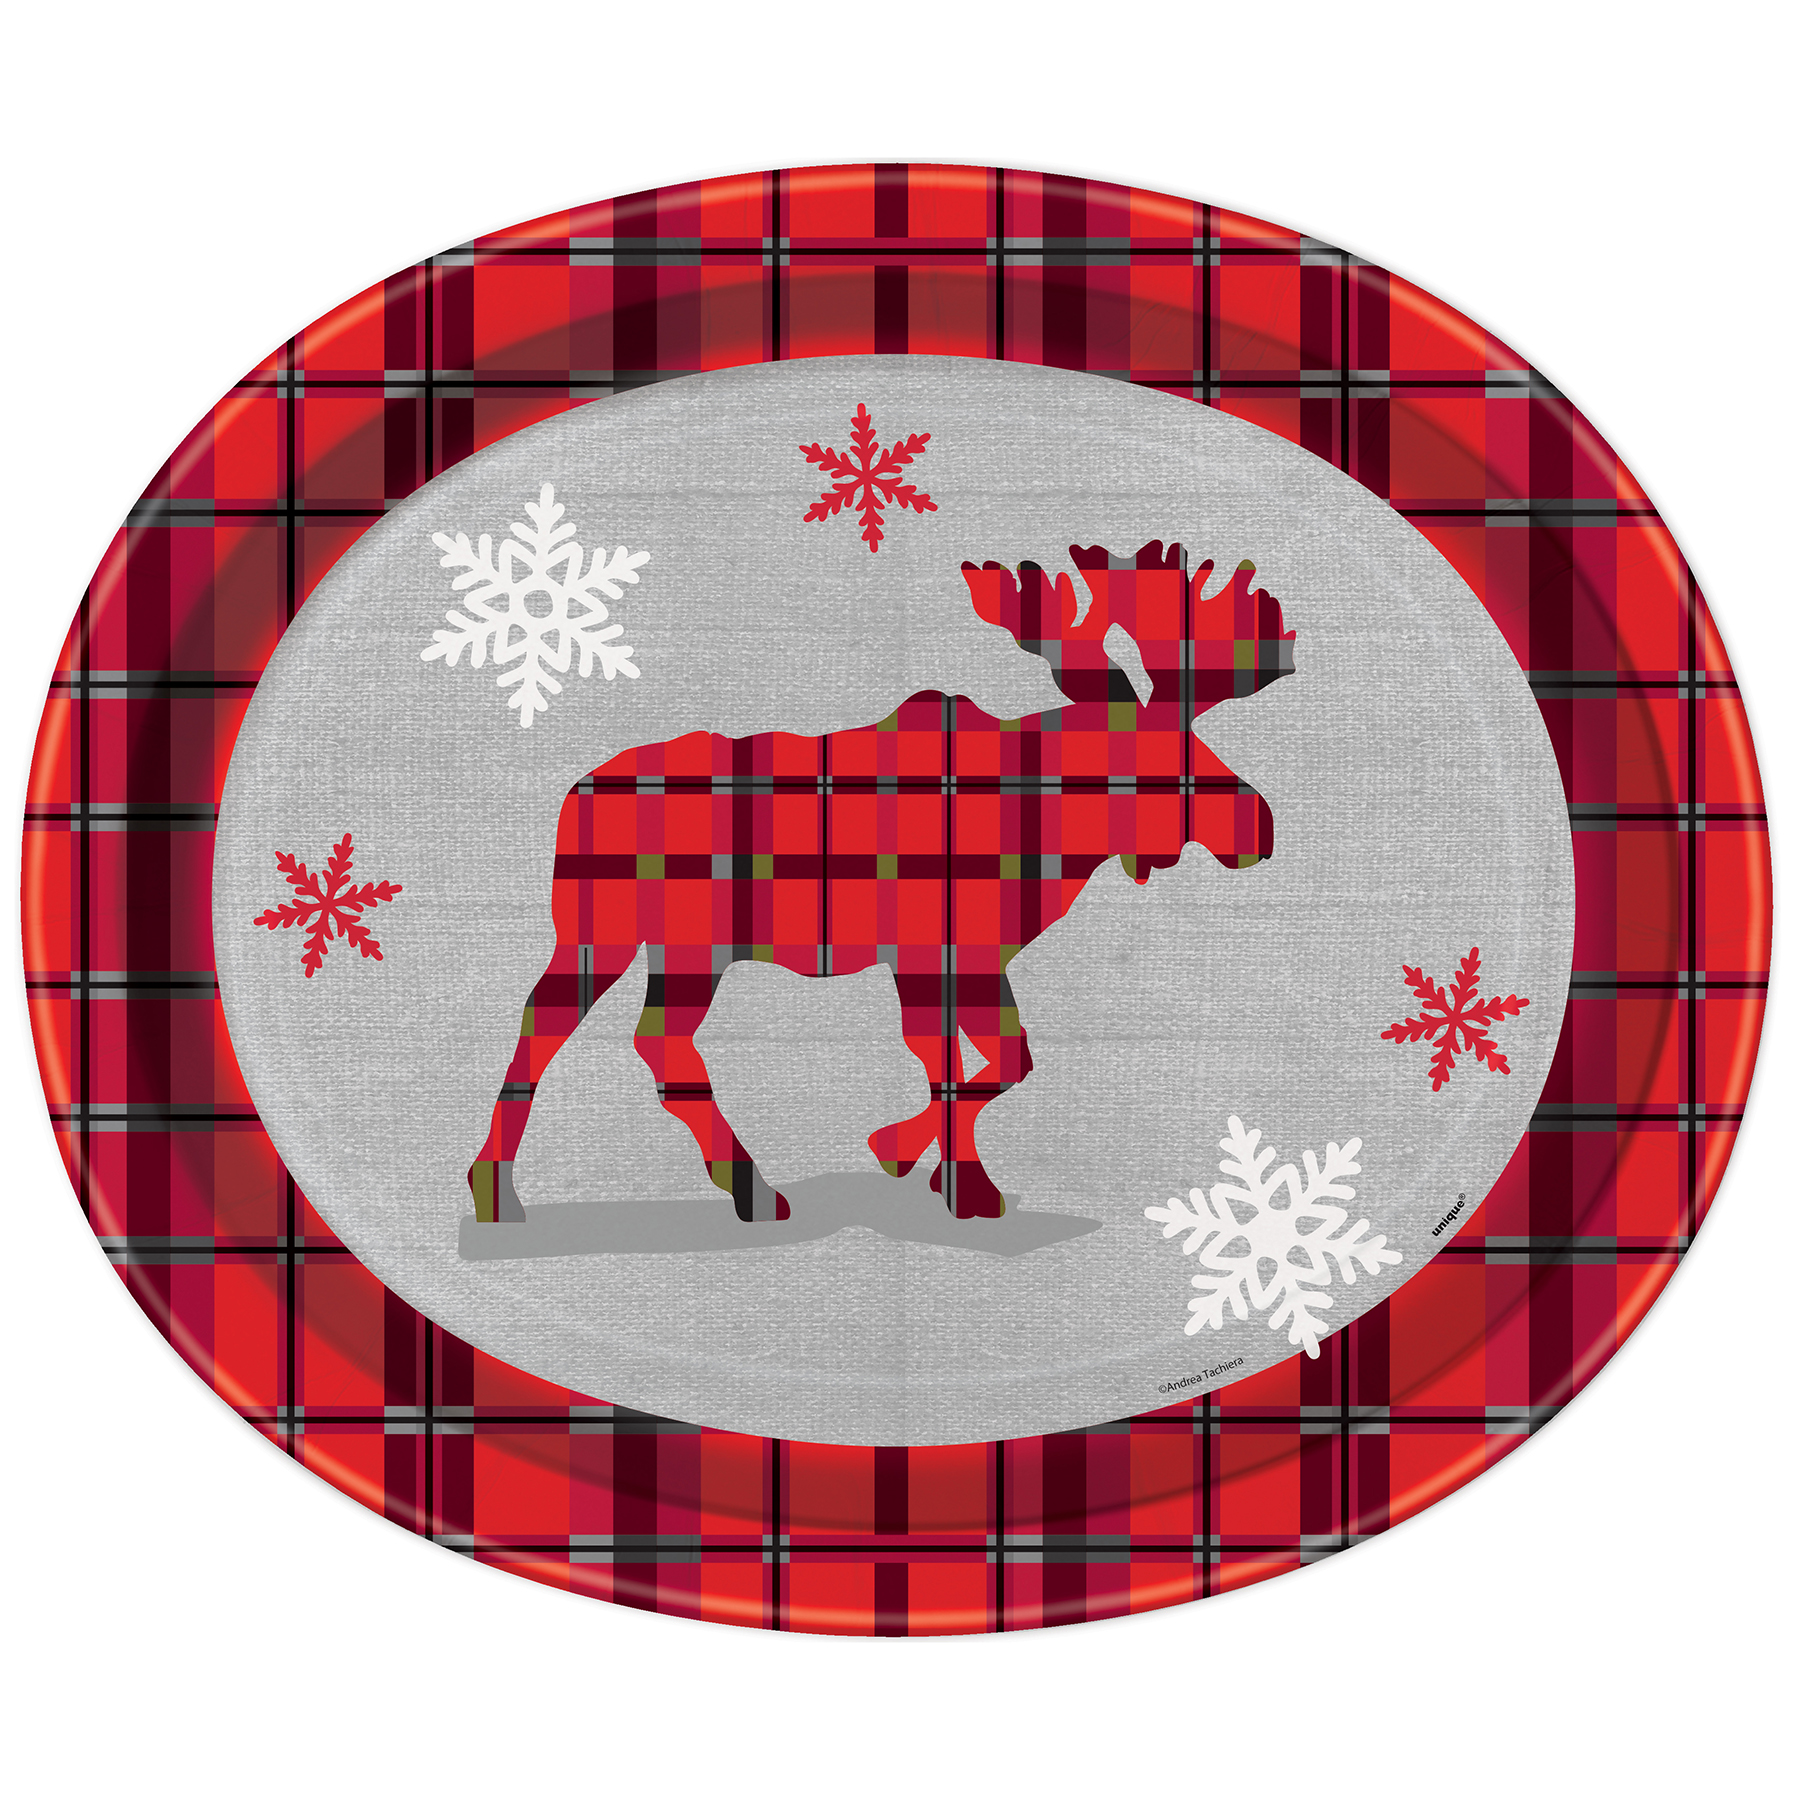 12\  Oval Rustic Plaid Christmas Dinner Plates ...  sc 1 st  Michaels Stores & Oval Rustic Plaid Christmas Paper Plates | Christmas Party Supplies